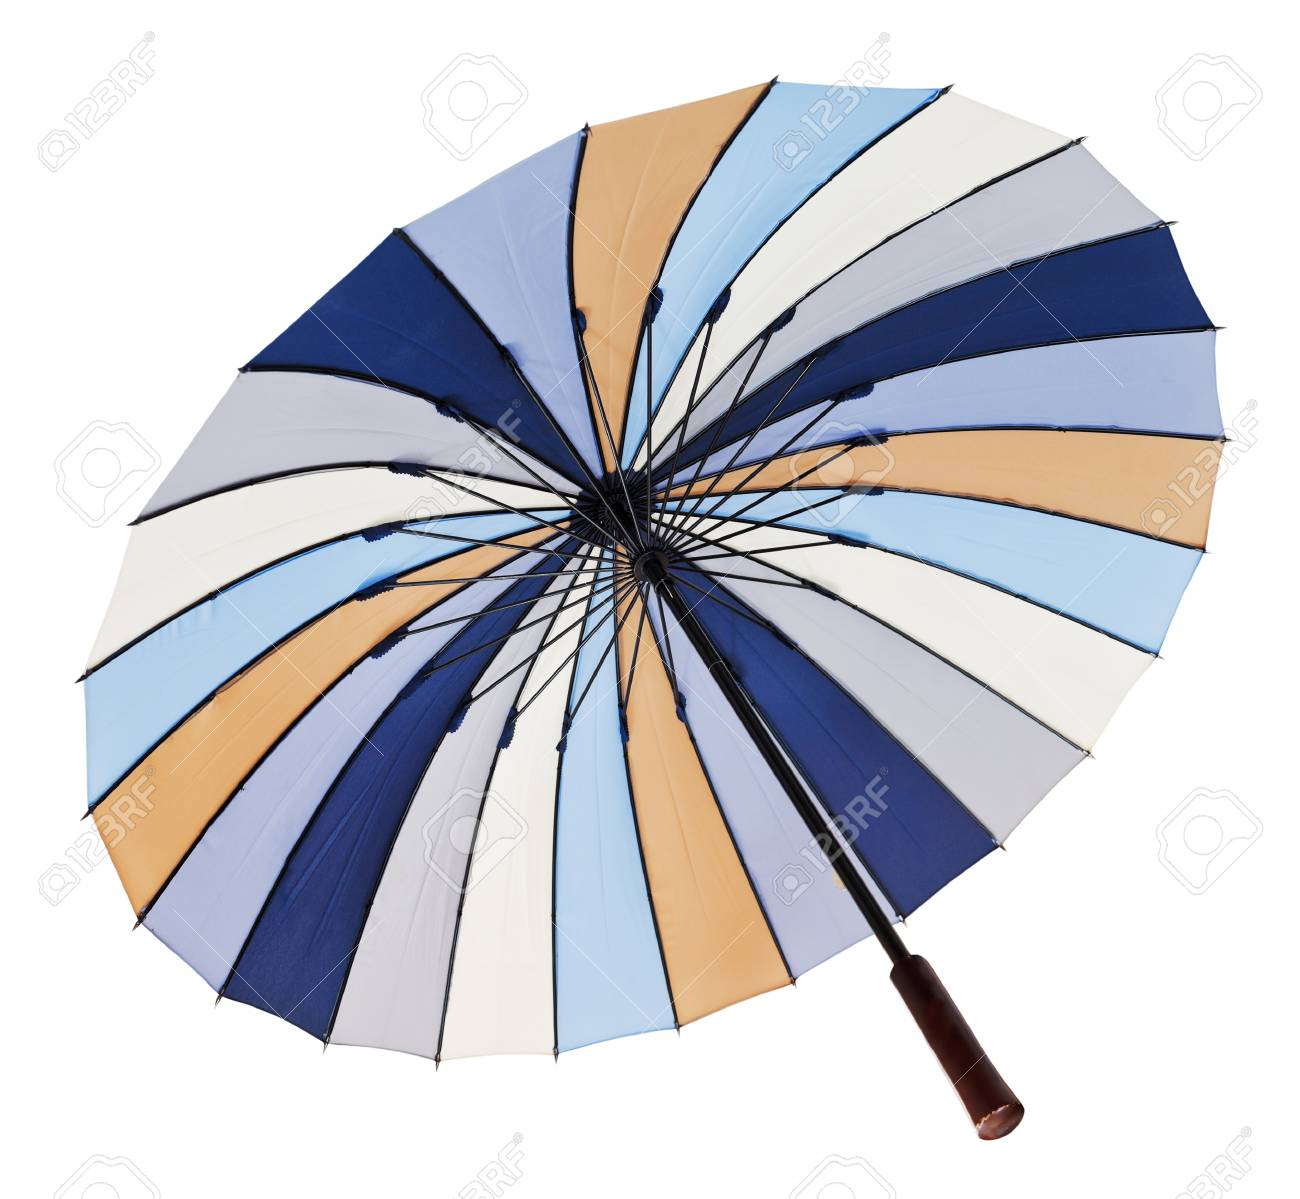 Stock P O View From Below Of Opened Multicolored Umbrella Isolated On White Background